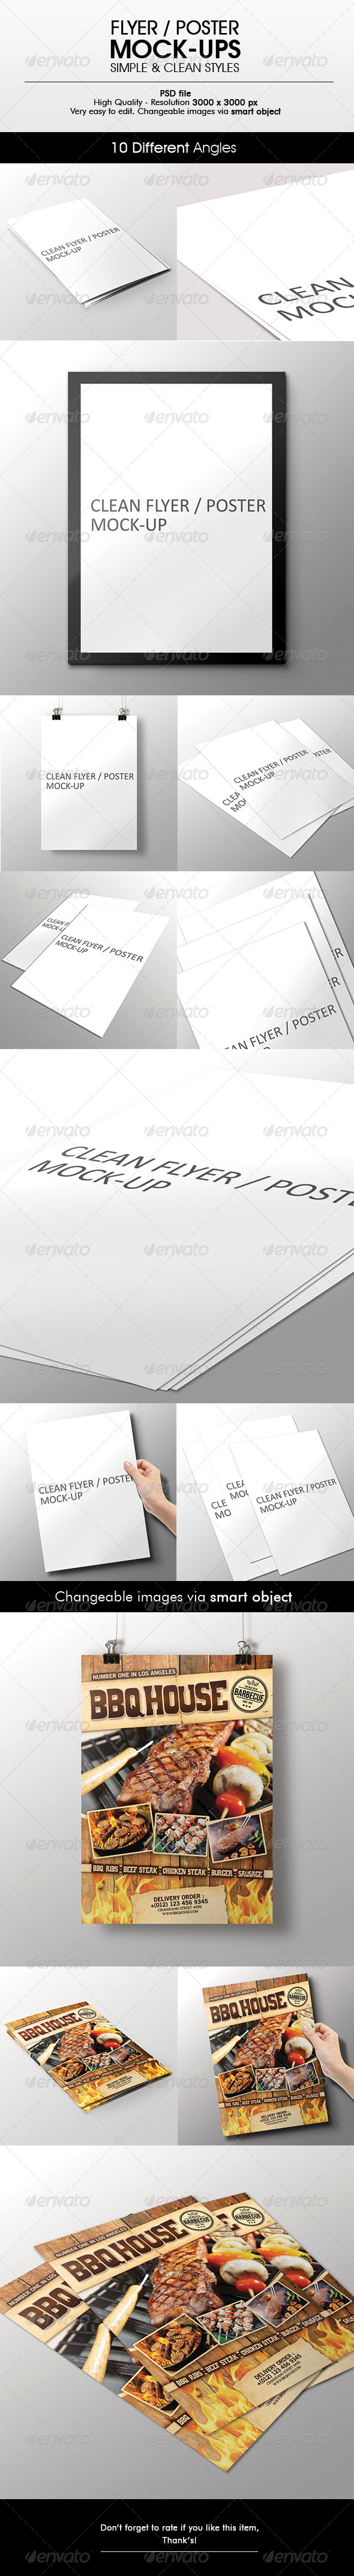 GraphicRiver Flyer Poster Mock-Up 6506186